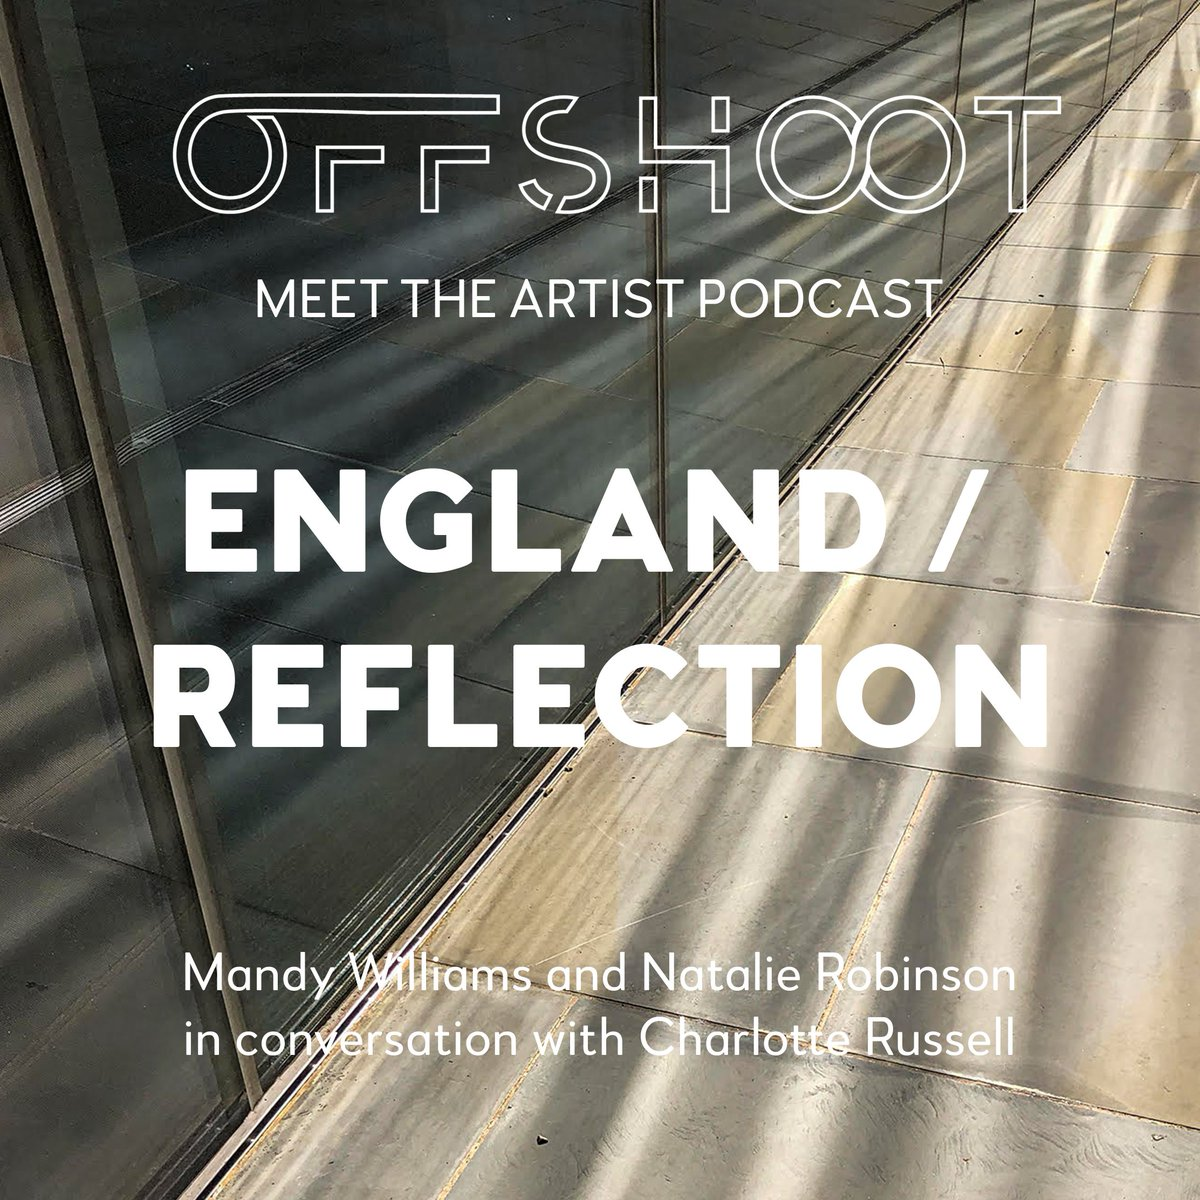 Join writer and curator Charlotte Russell in conversation with artists Mandy Williams and Natalie Robinson whose recent works England and Reflection are on display at Offshoot Gallery.    #england #reflection #mandywilliams #natalierobinson